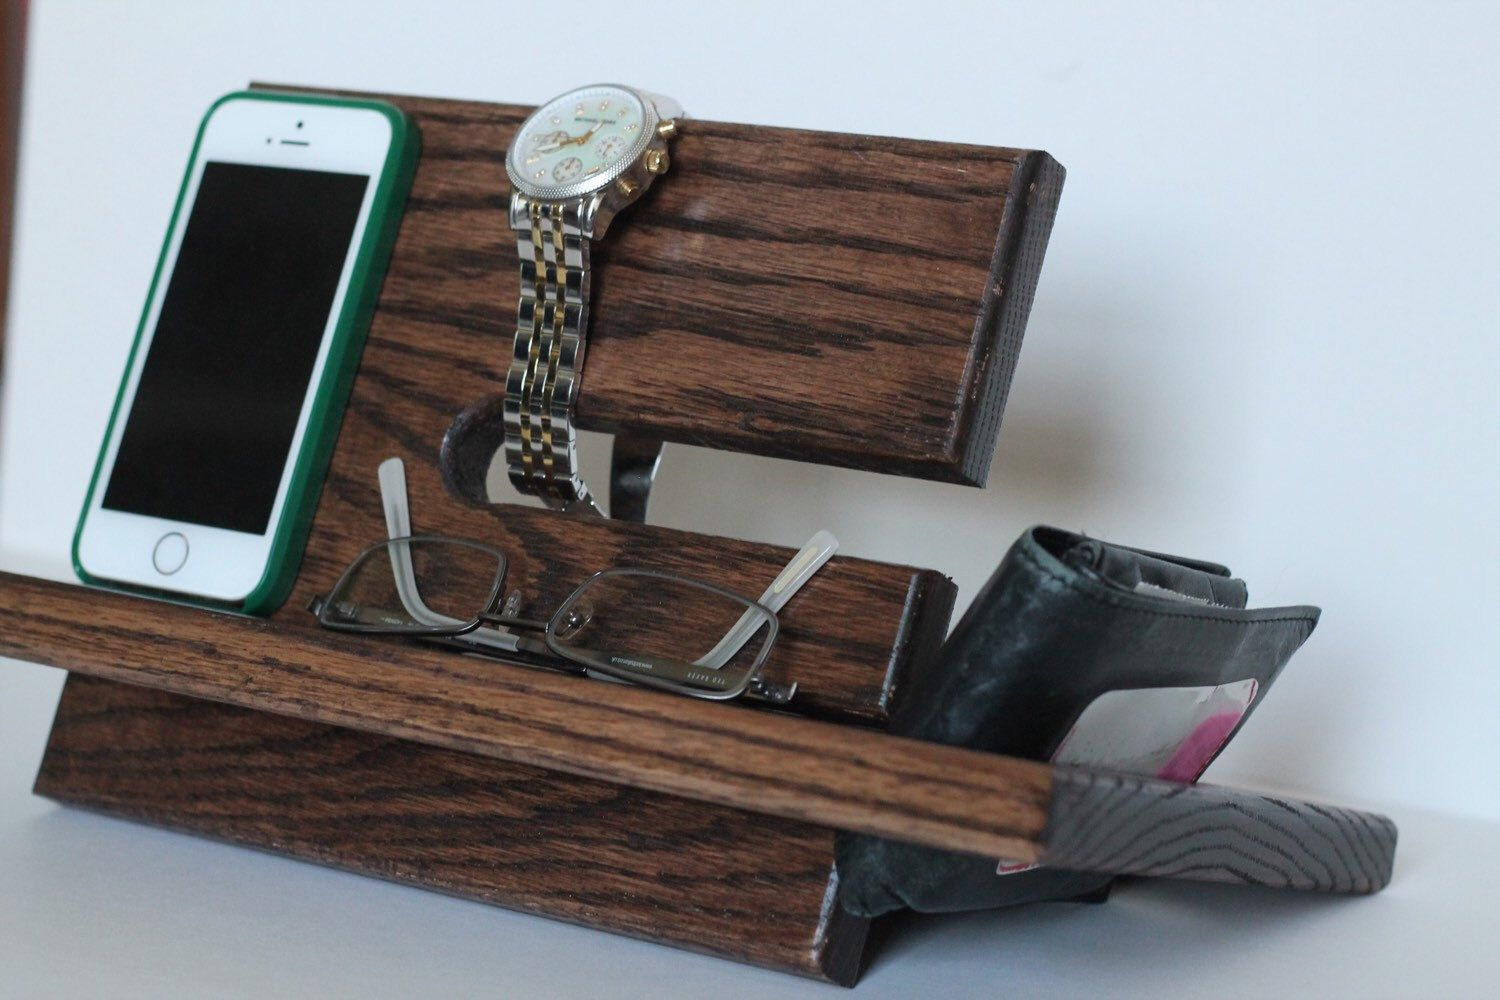 Large Model A Wallet Watches Phone Docking Station